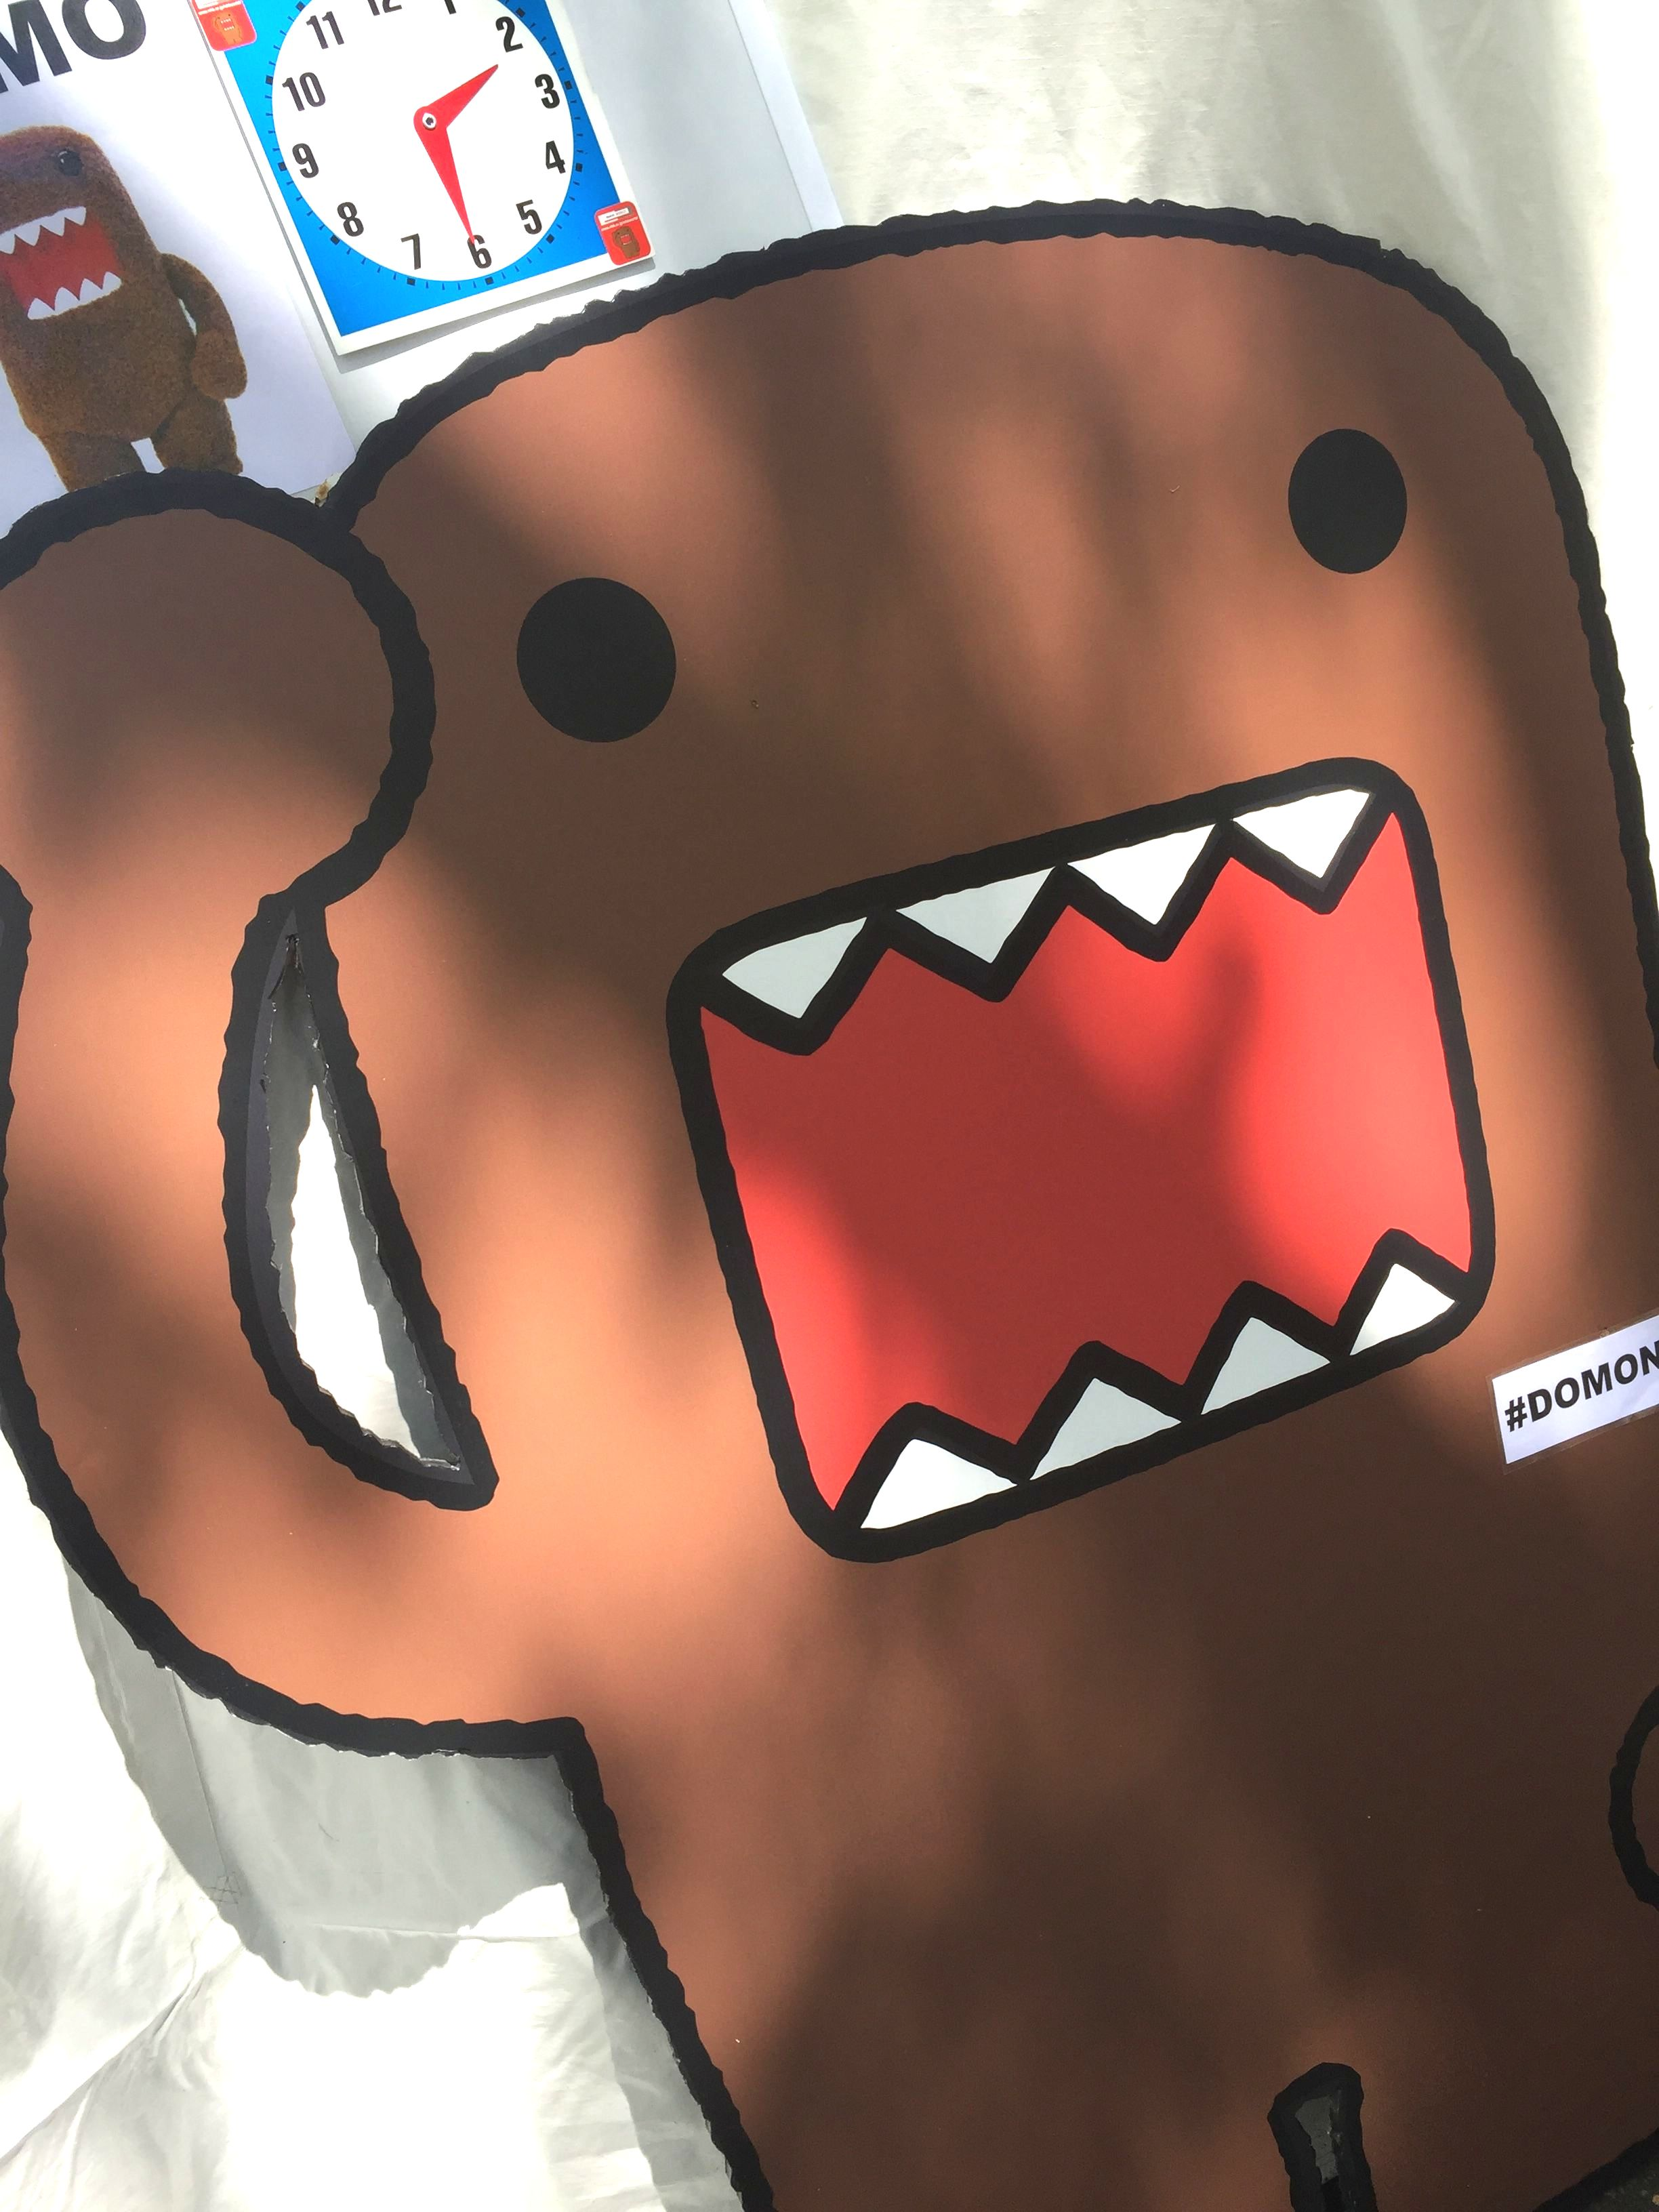 Photo booth featuring Domo, the official mascot of Japan public broadcasting,NHK